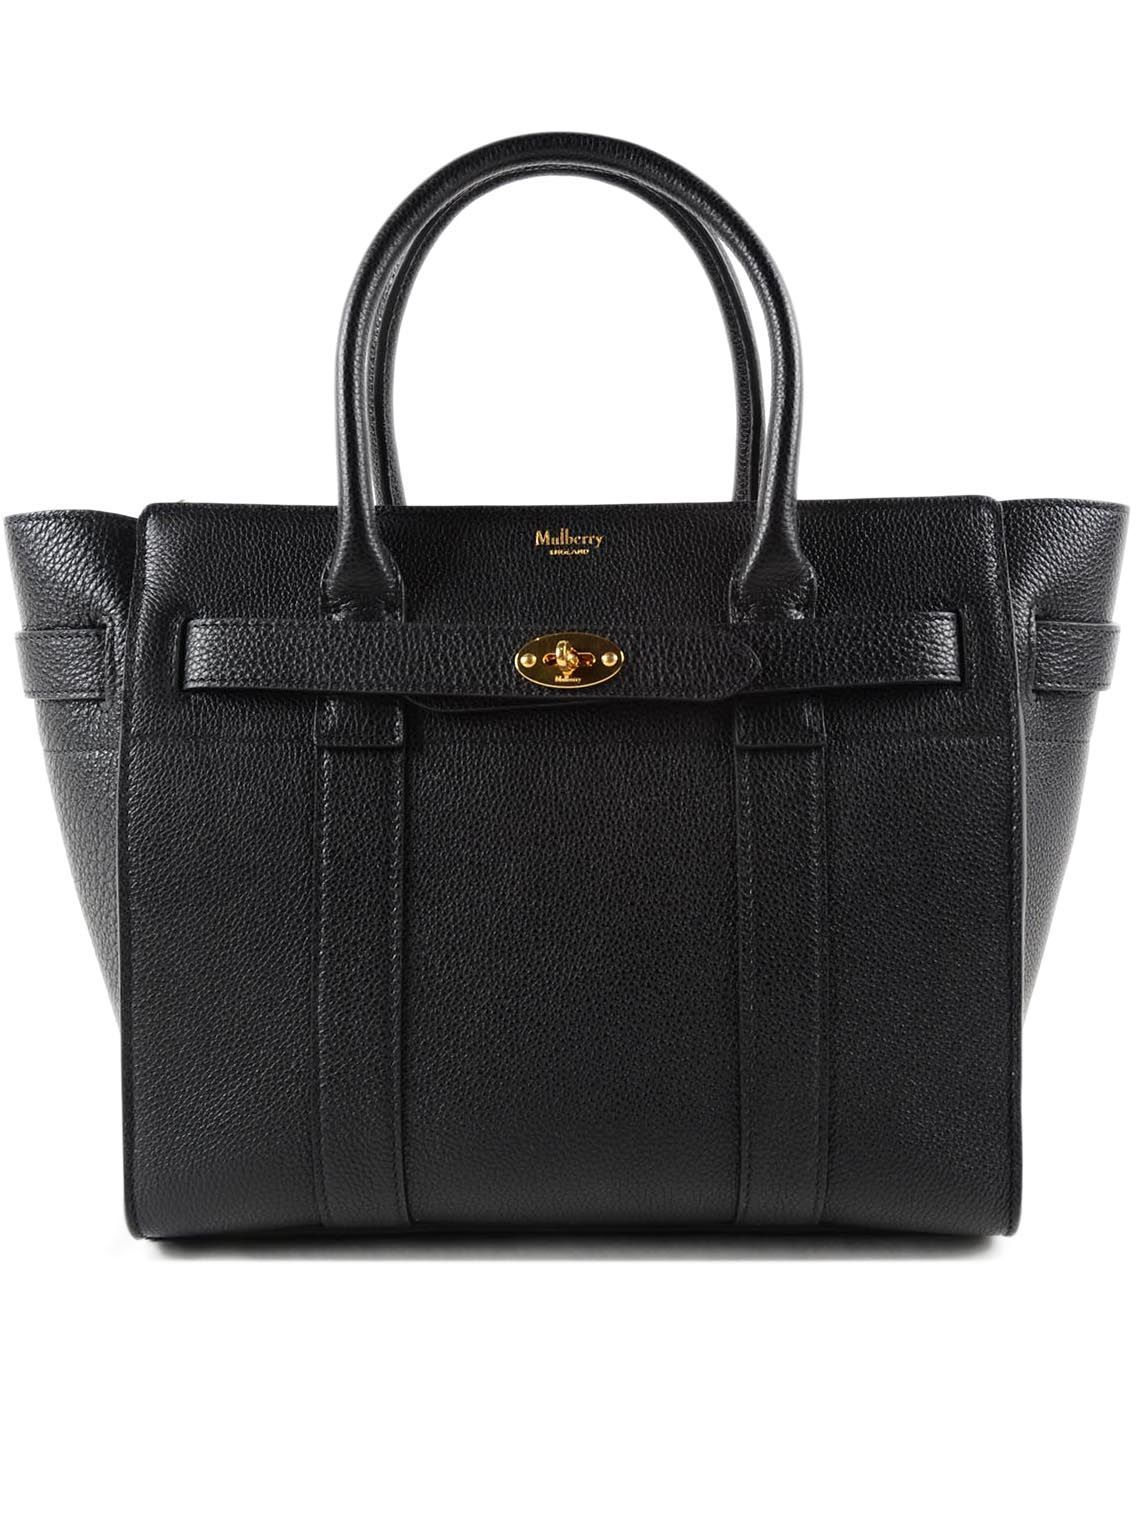 4ac5eeece02 MULBERRY SMALL BAYSWATER ZIP TOTE.  mulberry  bags  shoulder bags ...